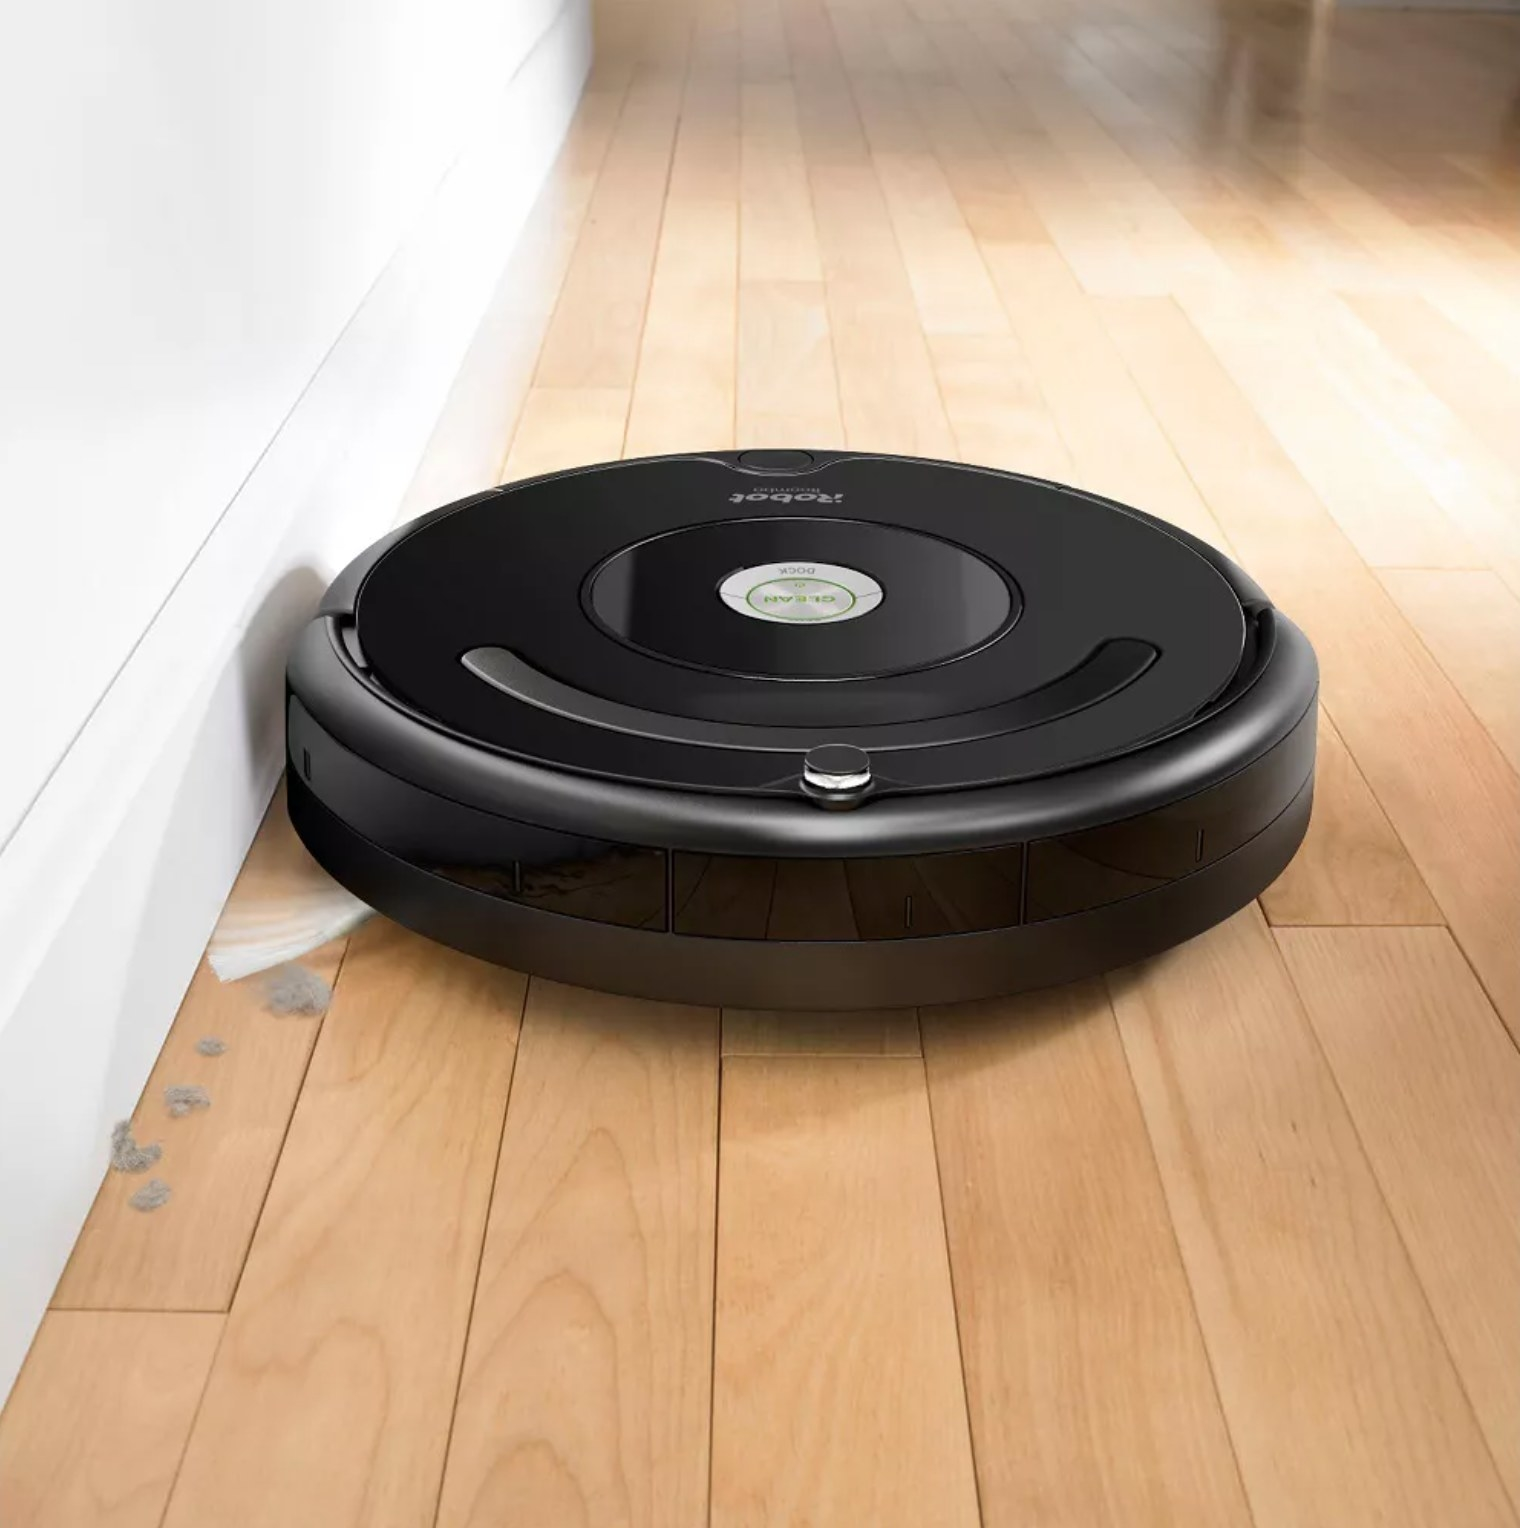 the robot vacuum sweeping up dirt